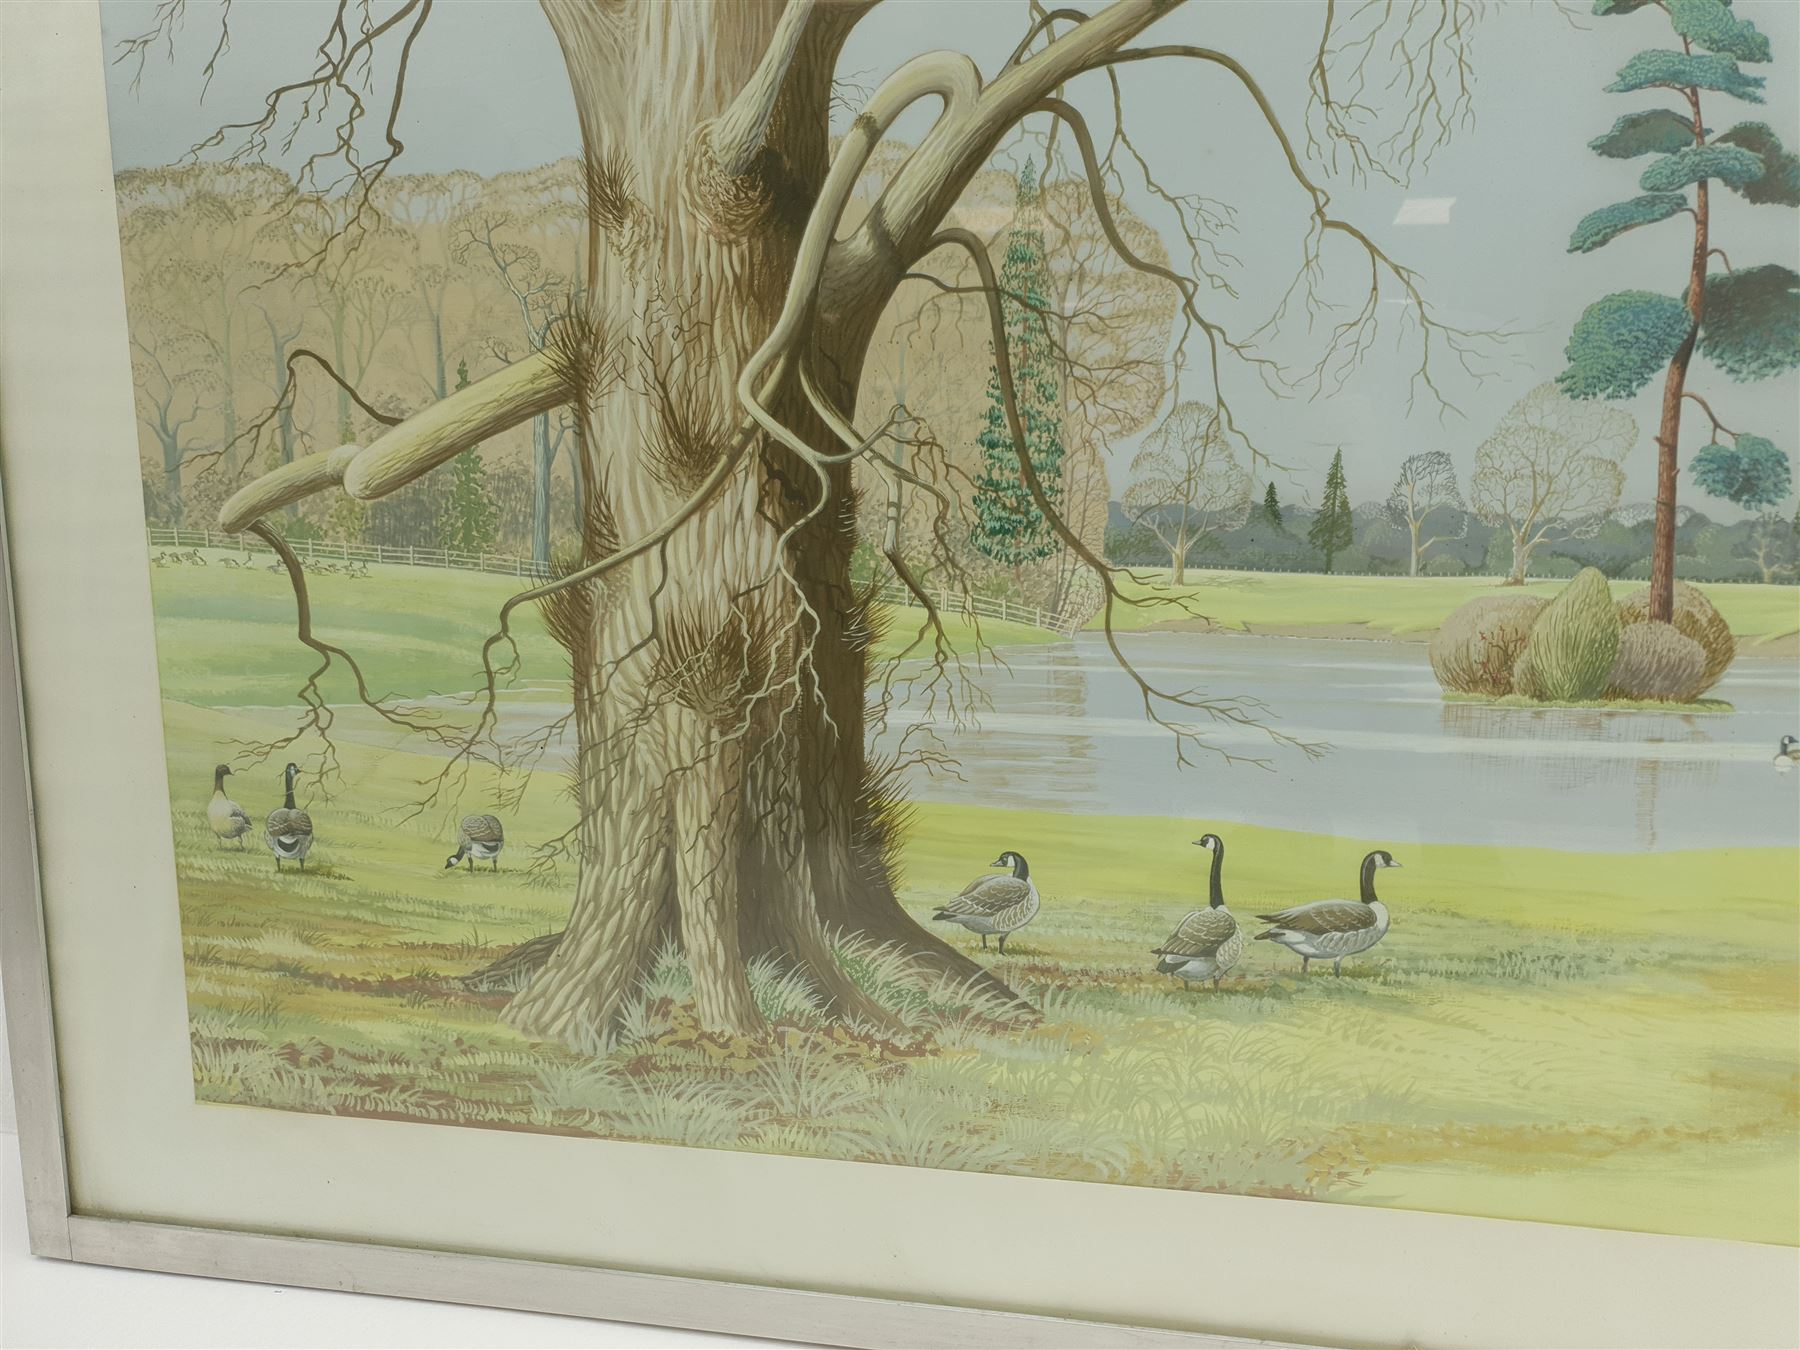 P Swayne (British 20th century): Geese in a River Landscape - Image 5 of 5